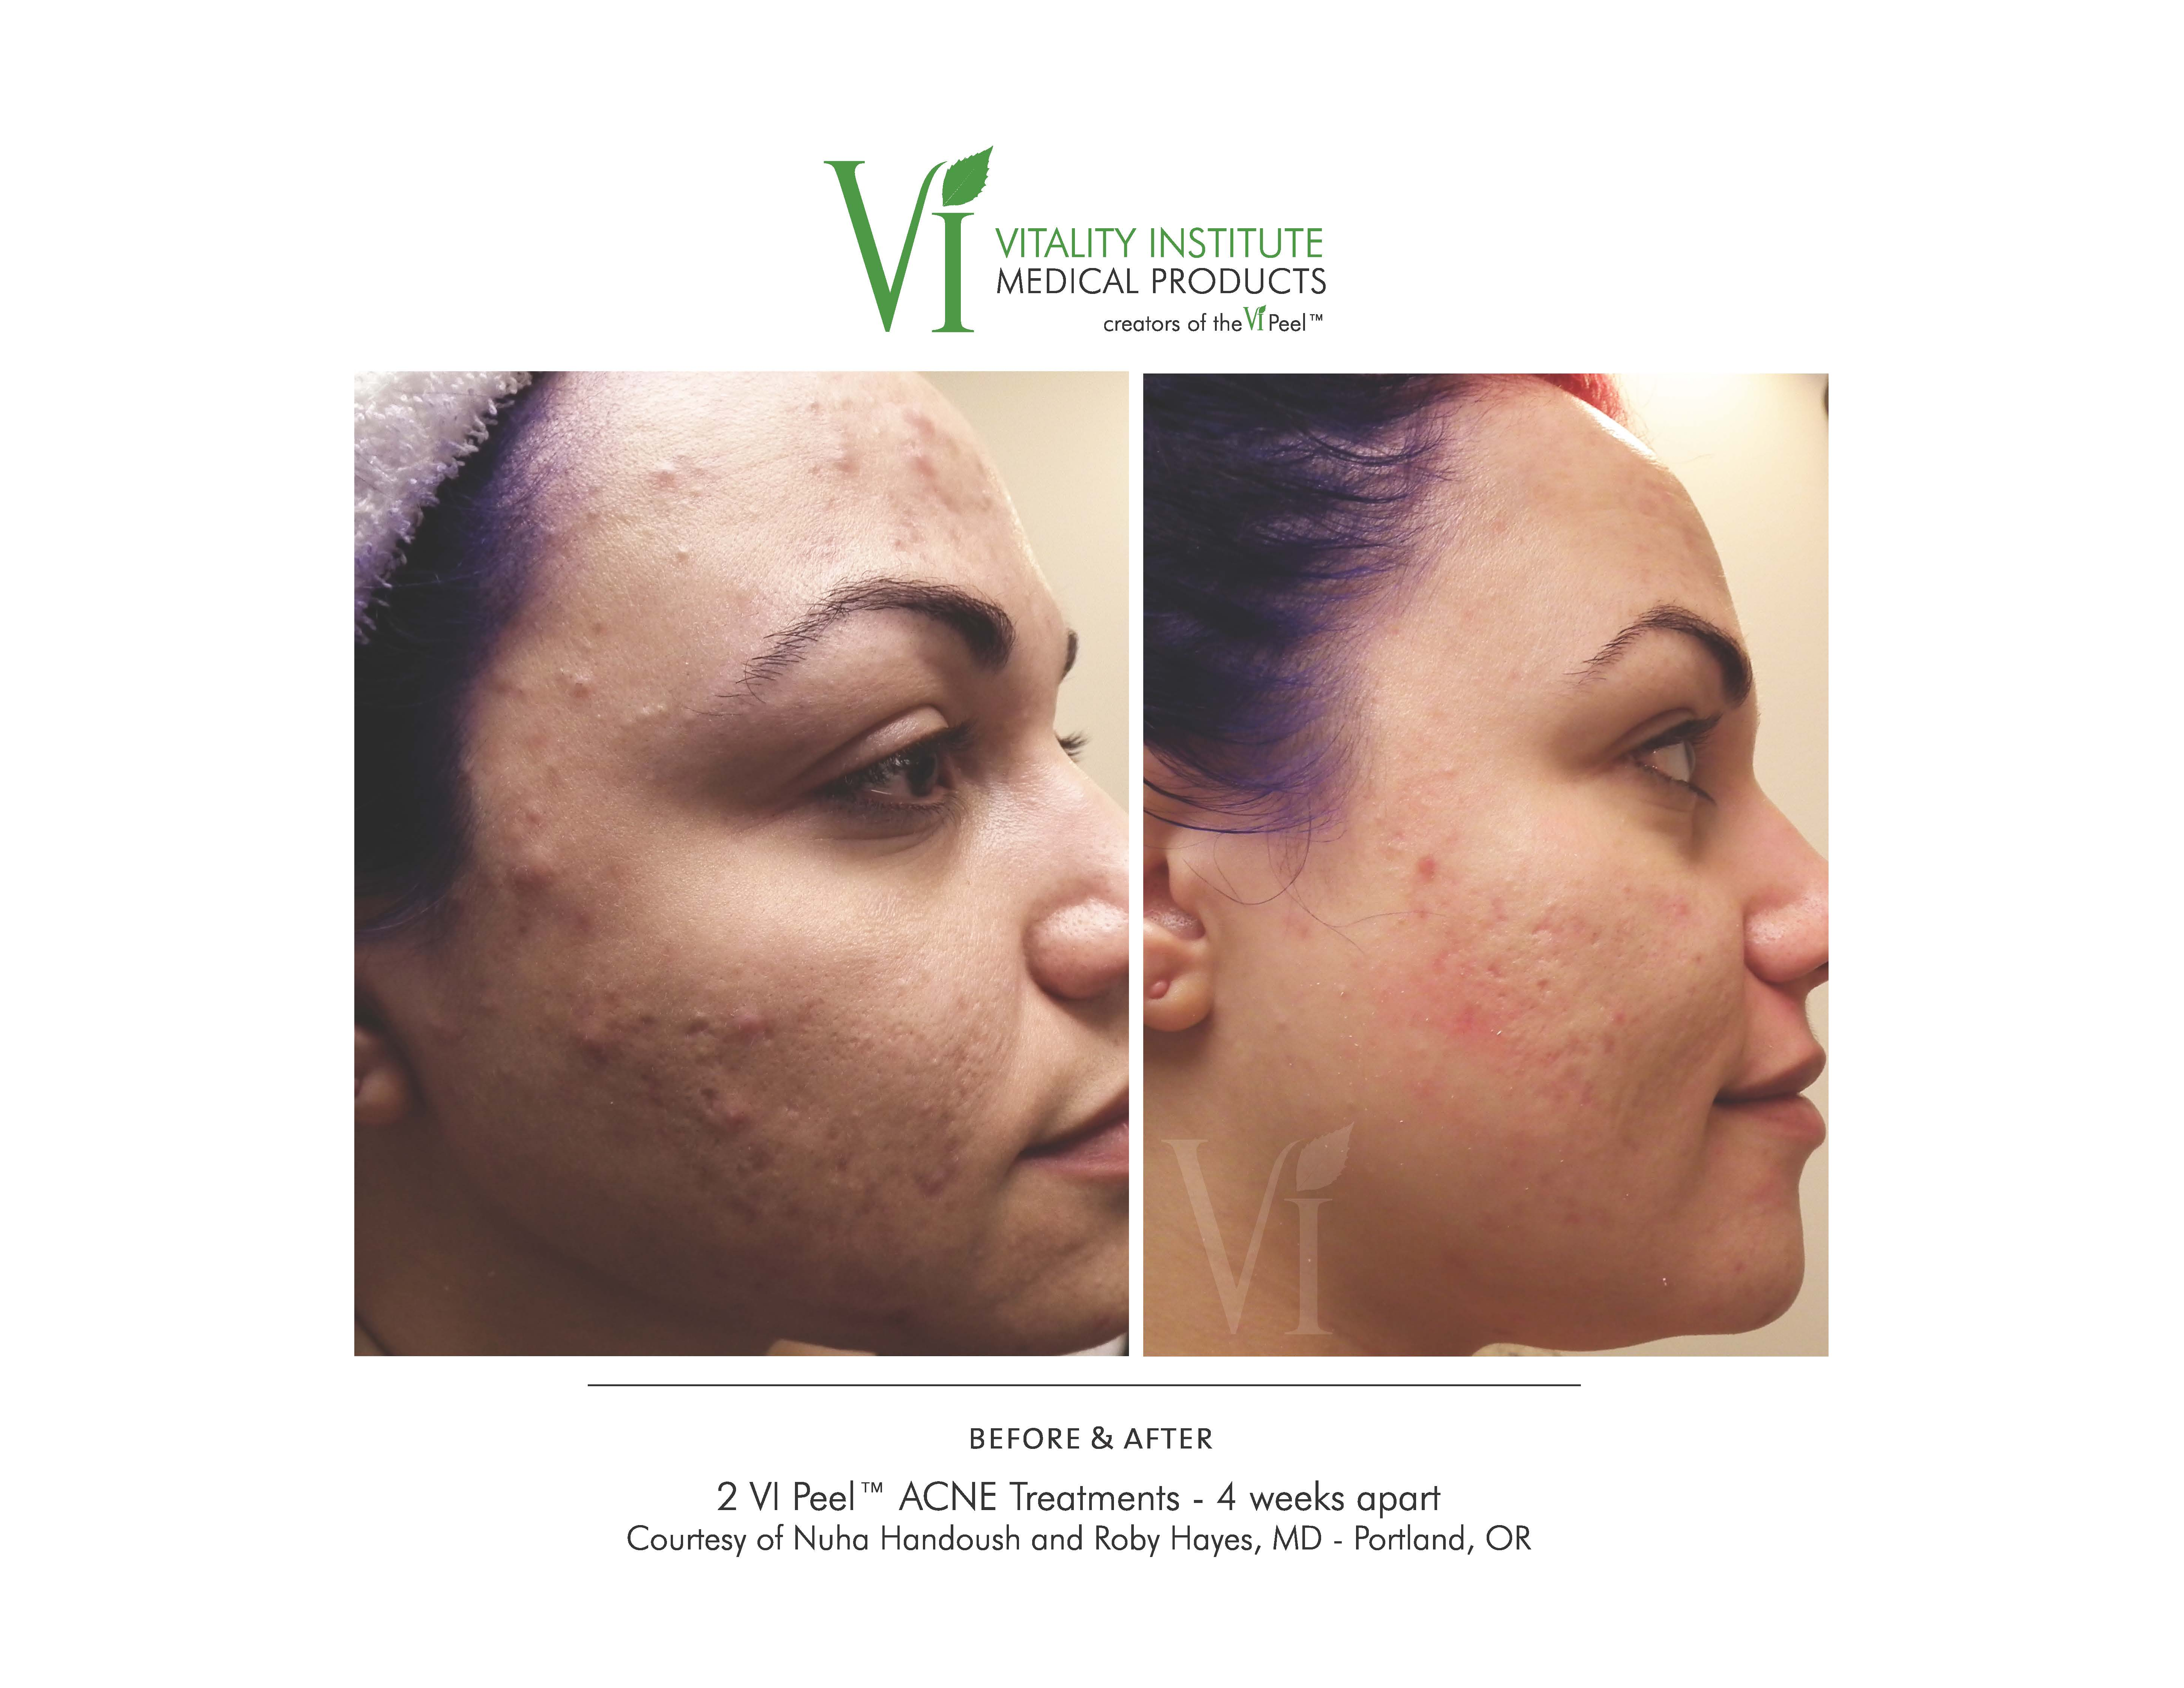 before and after chemical peel image